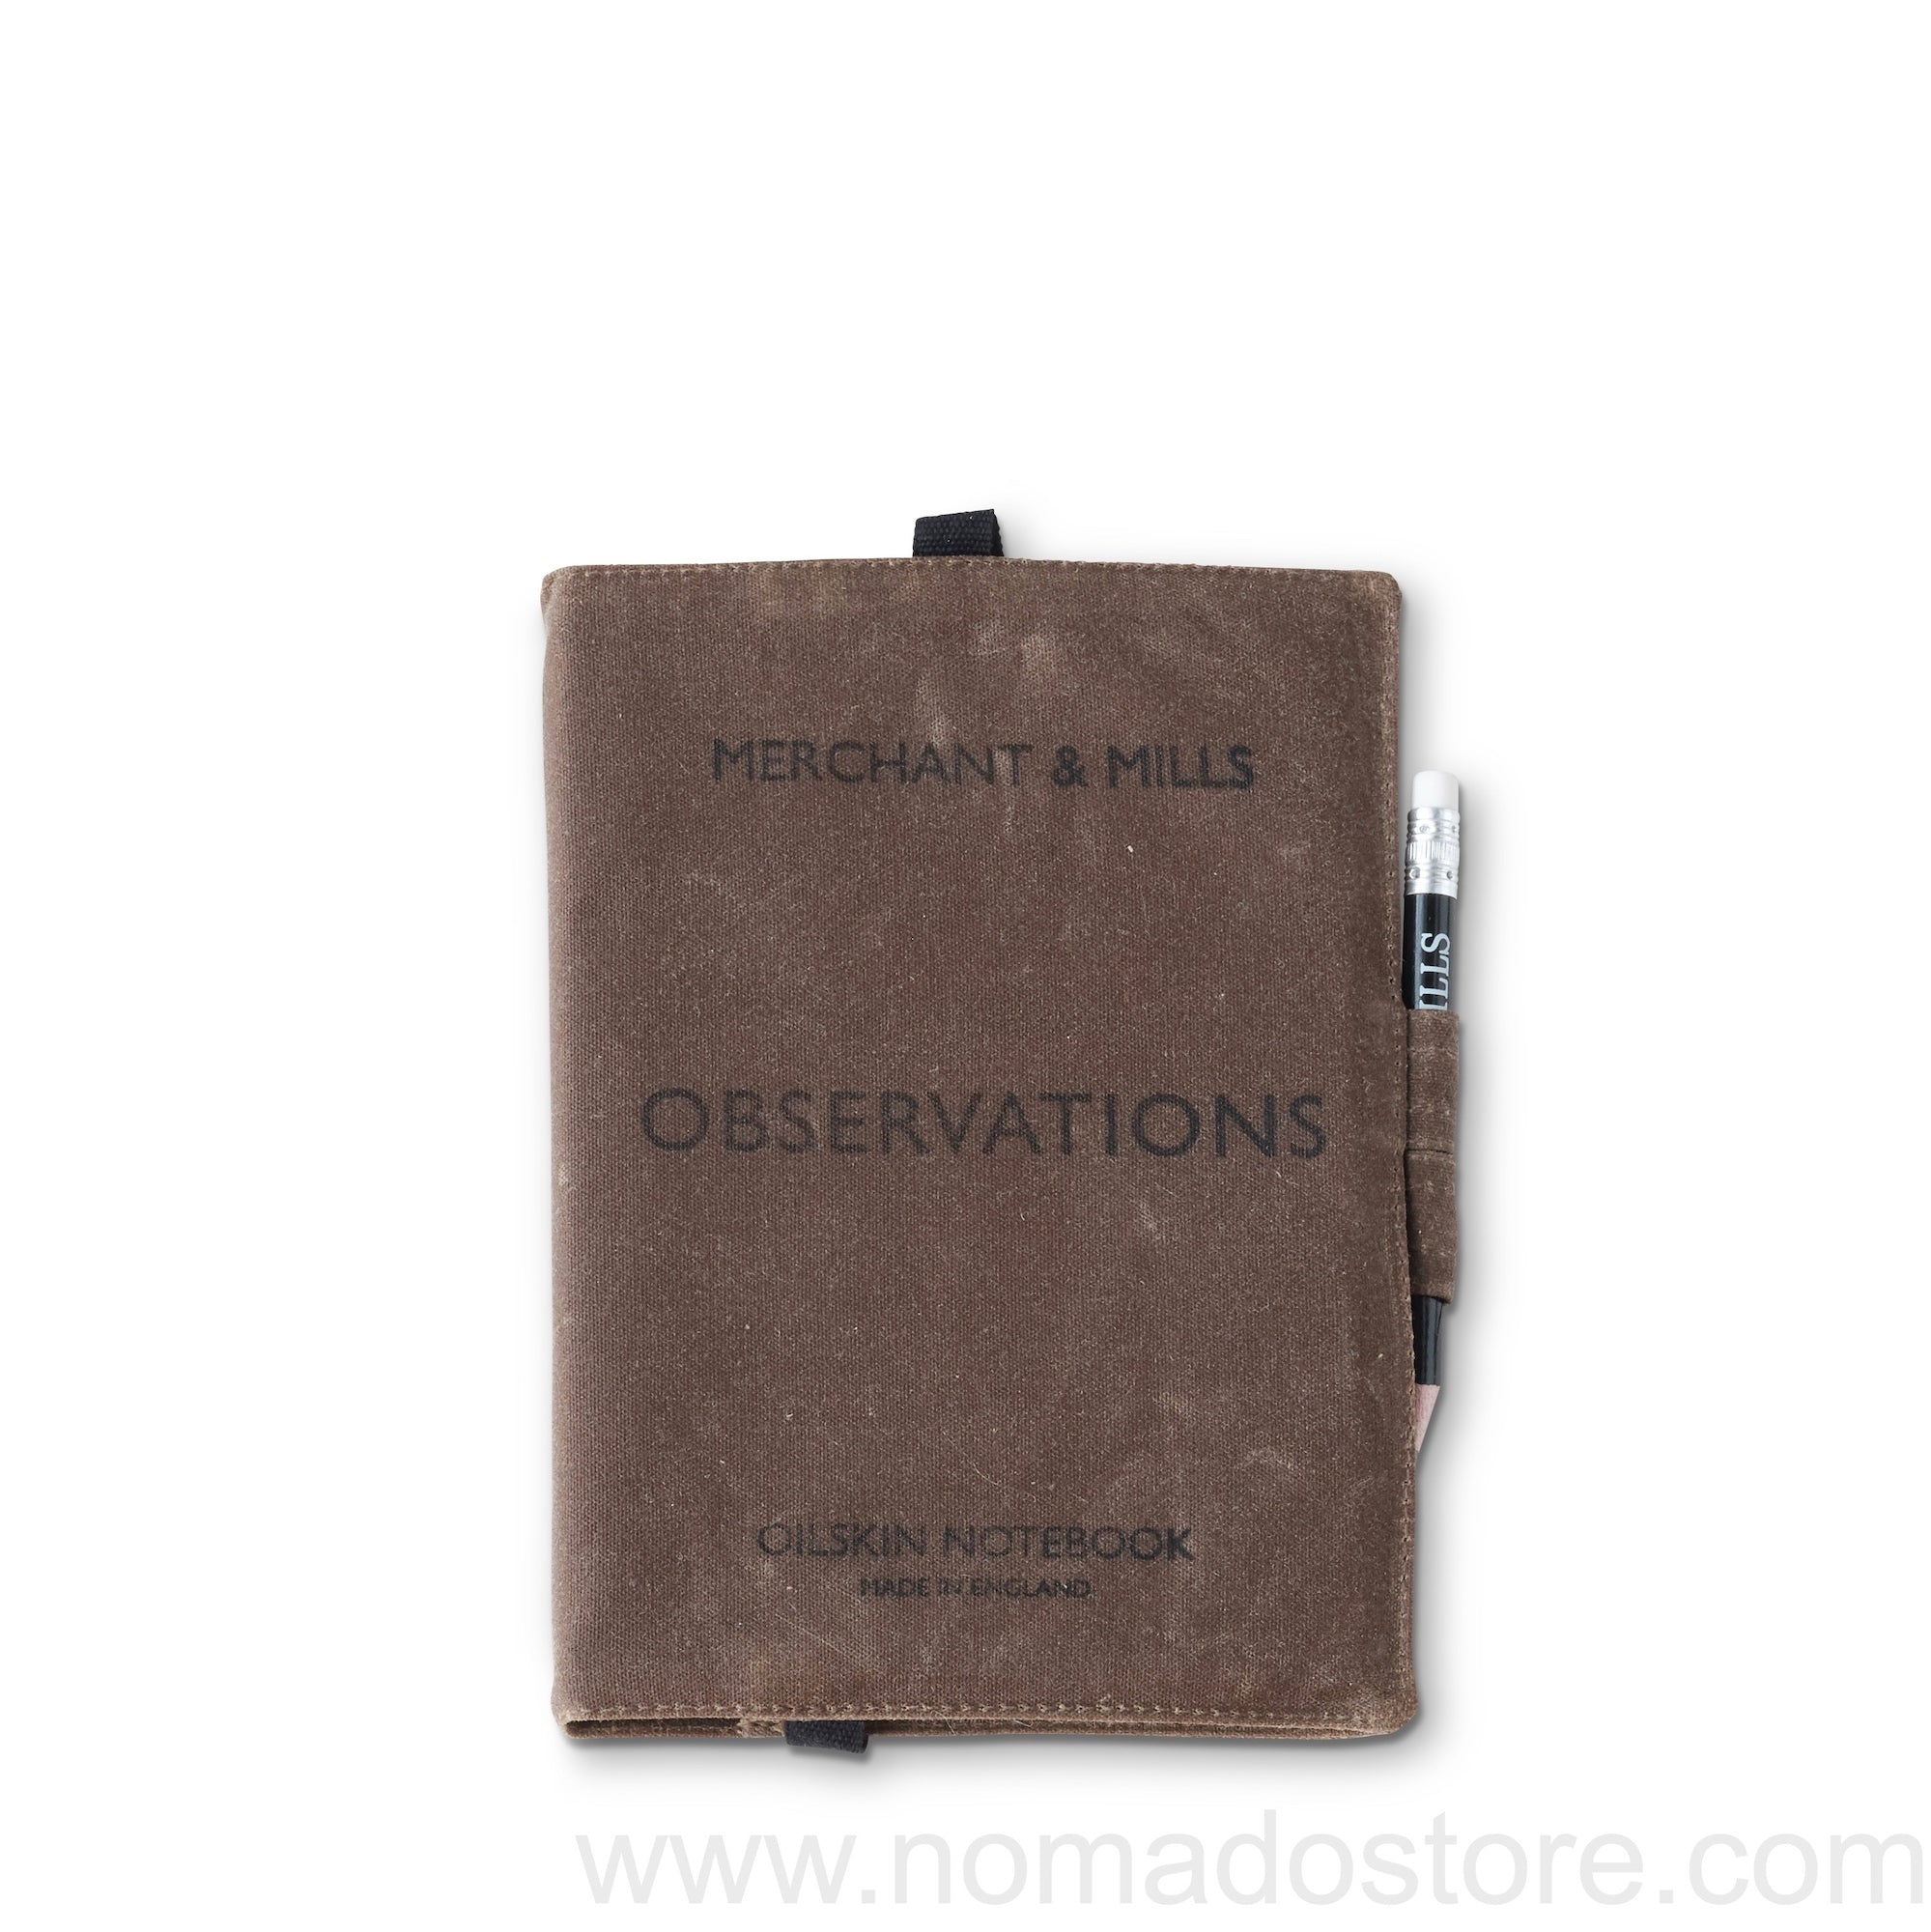 Merchant & Mills Observations Notebook - NOMADO Store